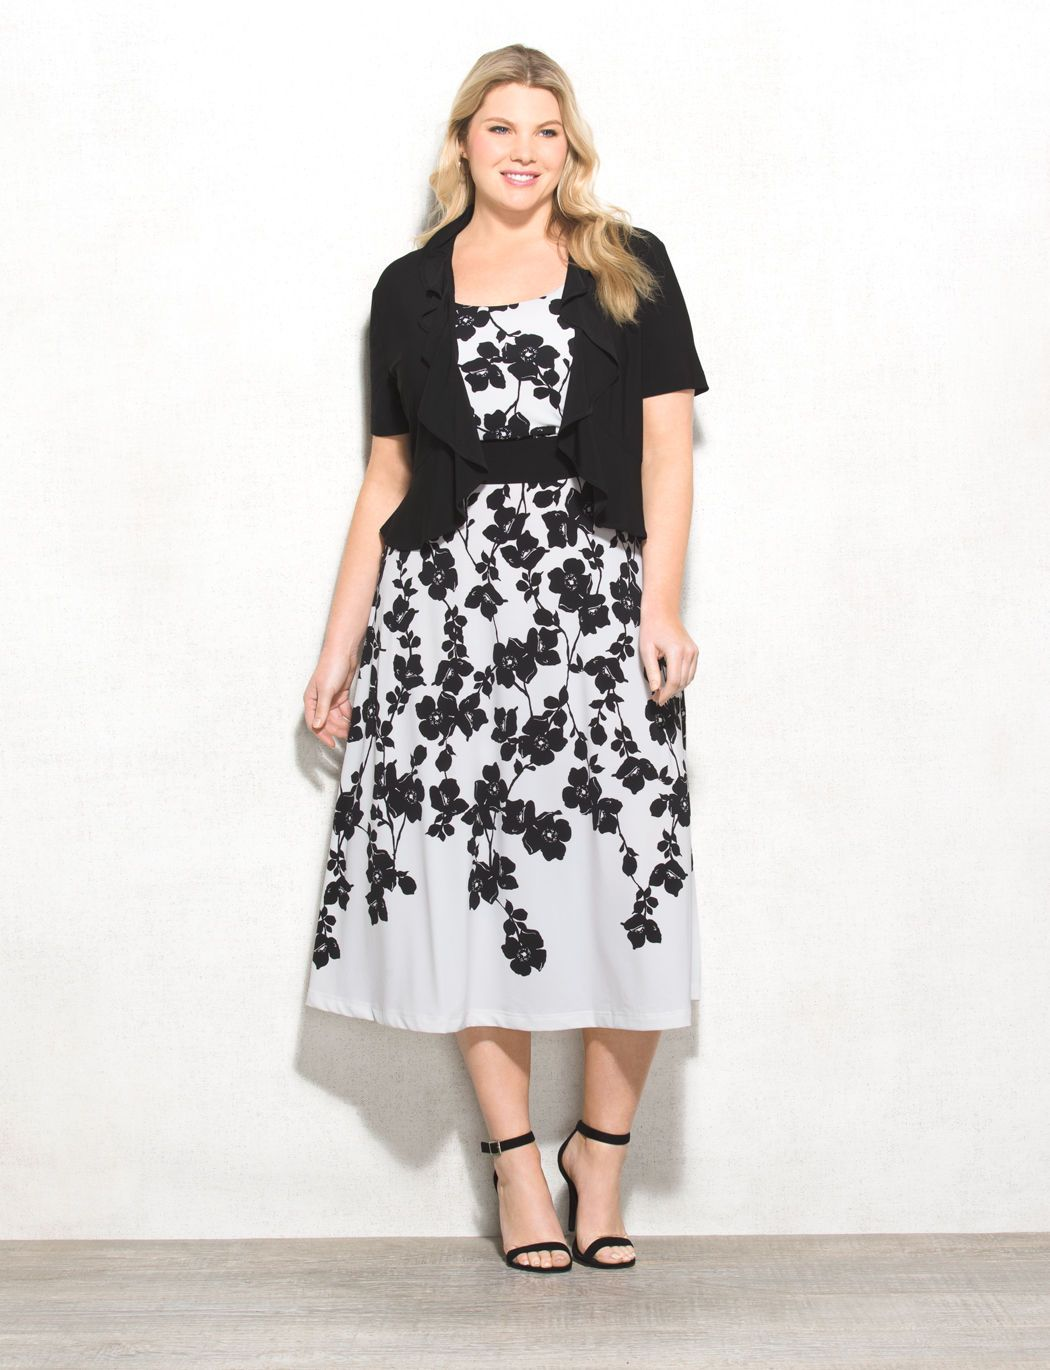 Plus Size Floral Print Jacket Dress. This dress and jacket